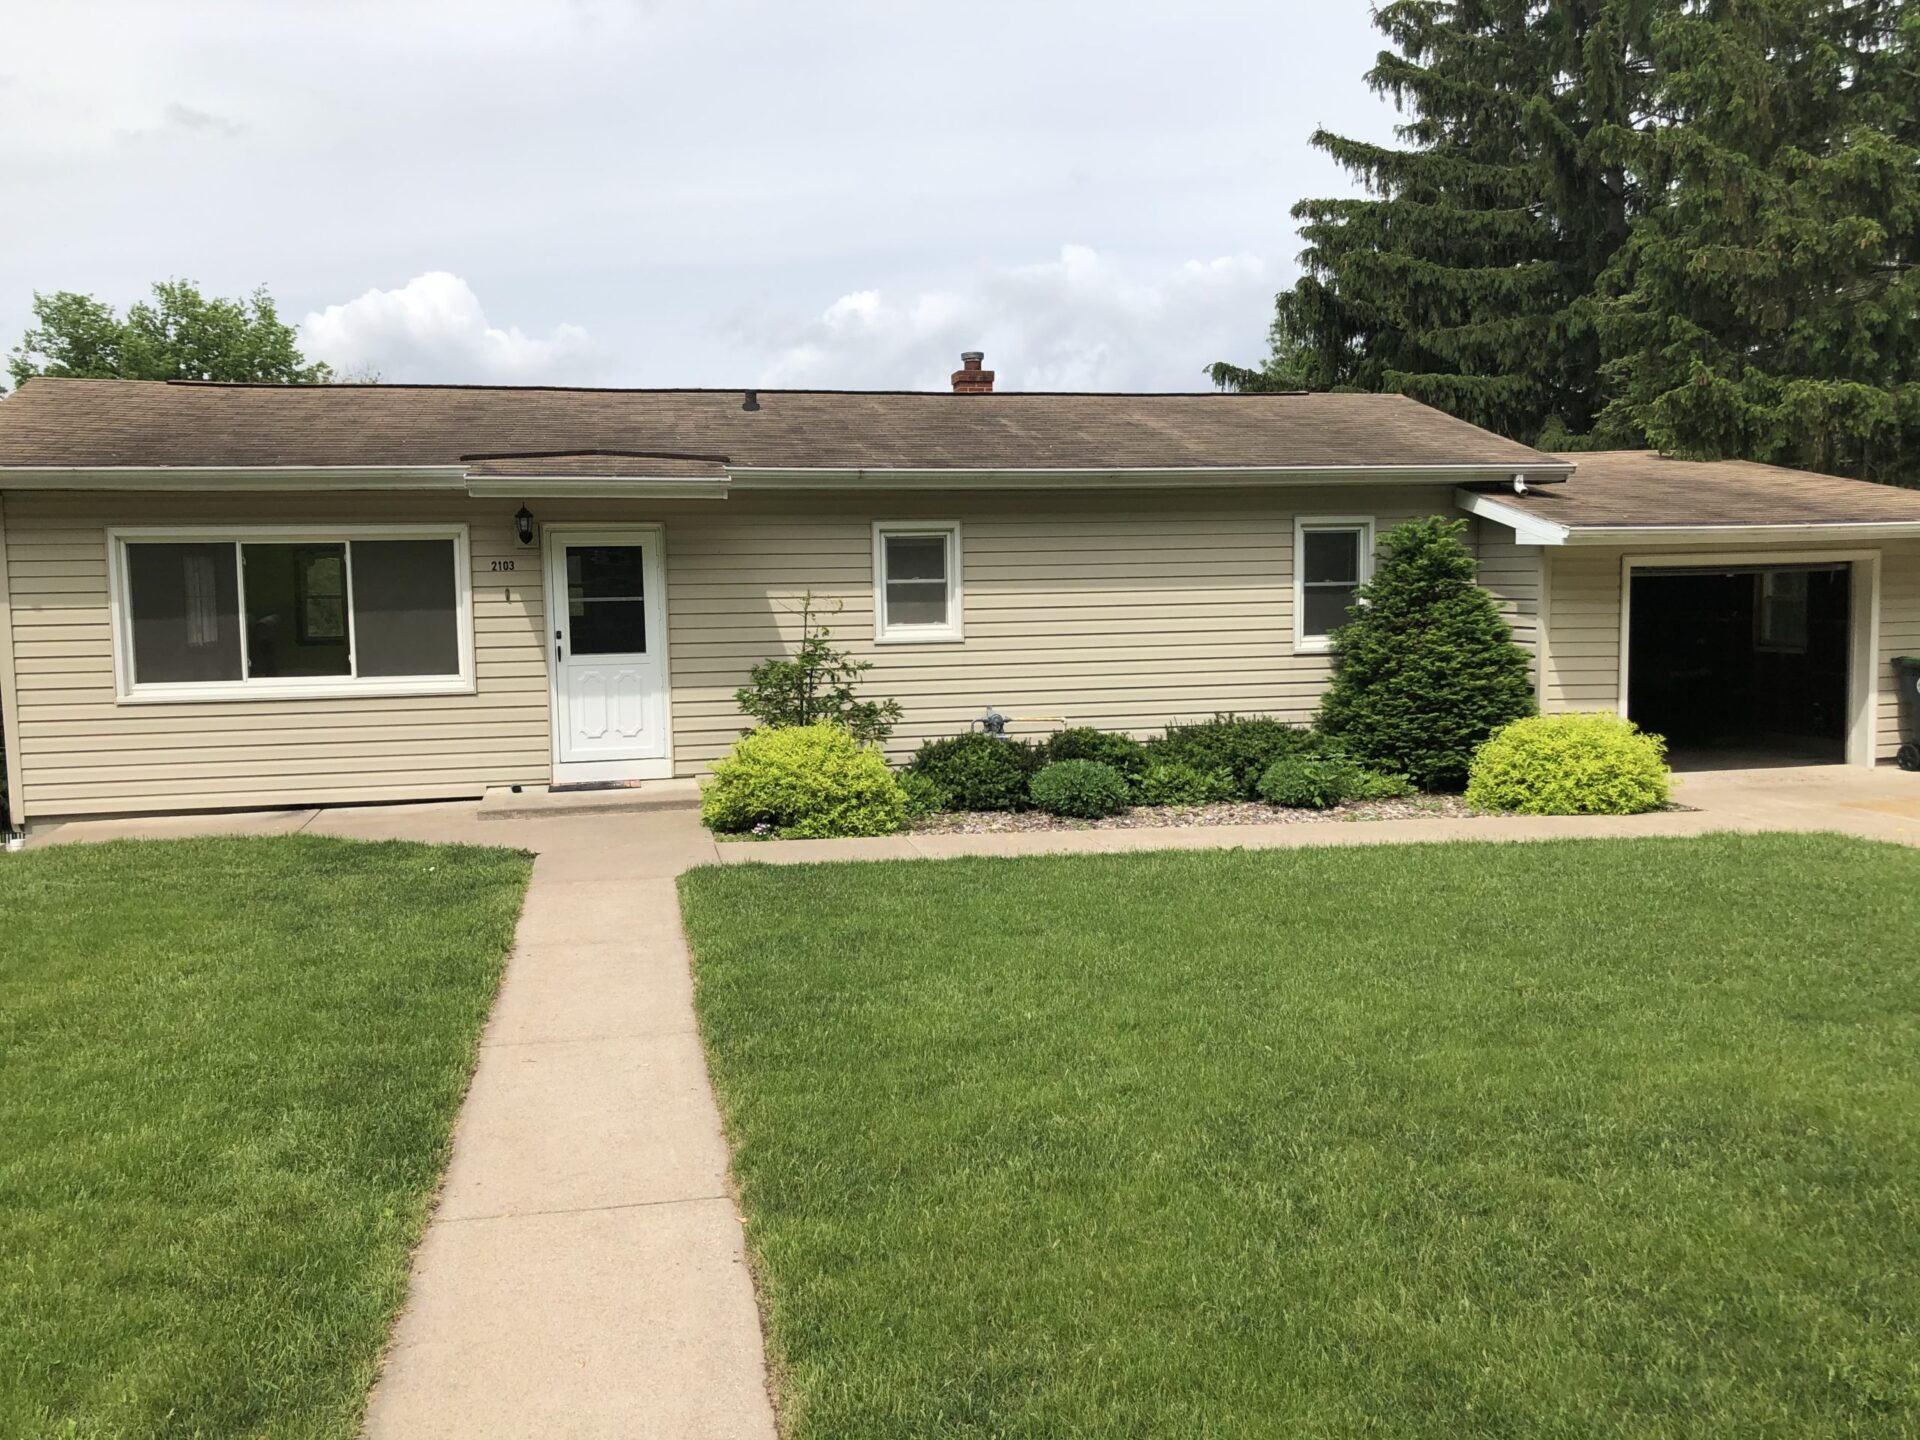 2103A Sunset Ln.  La Crosse WI 54601